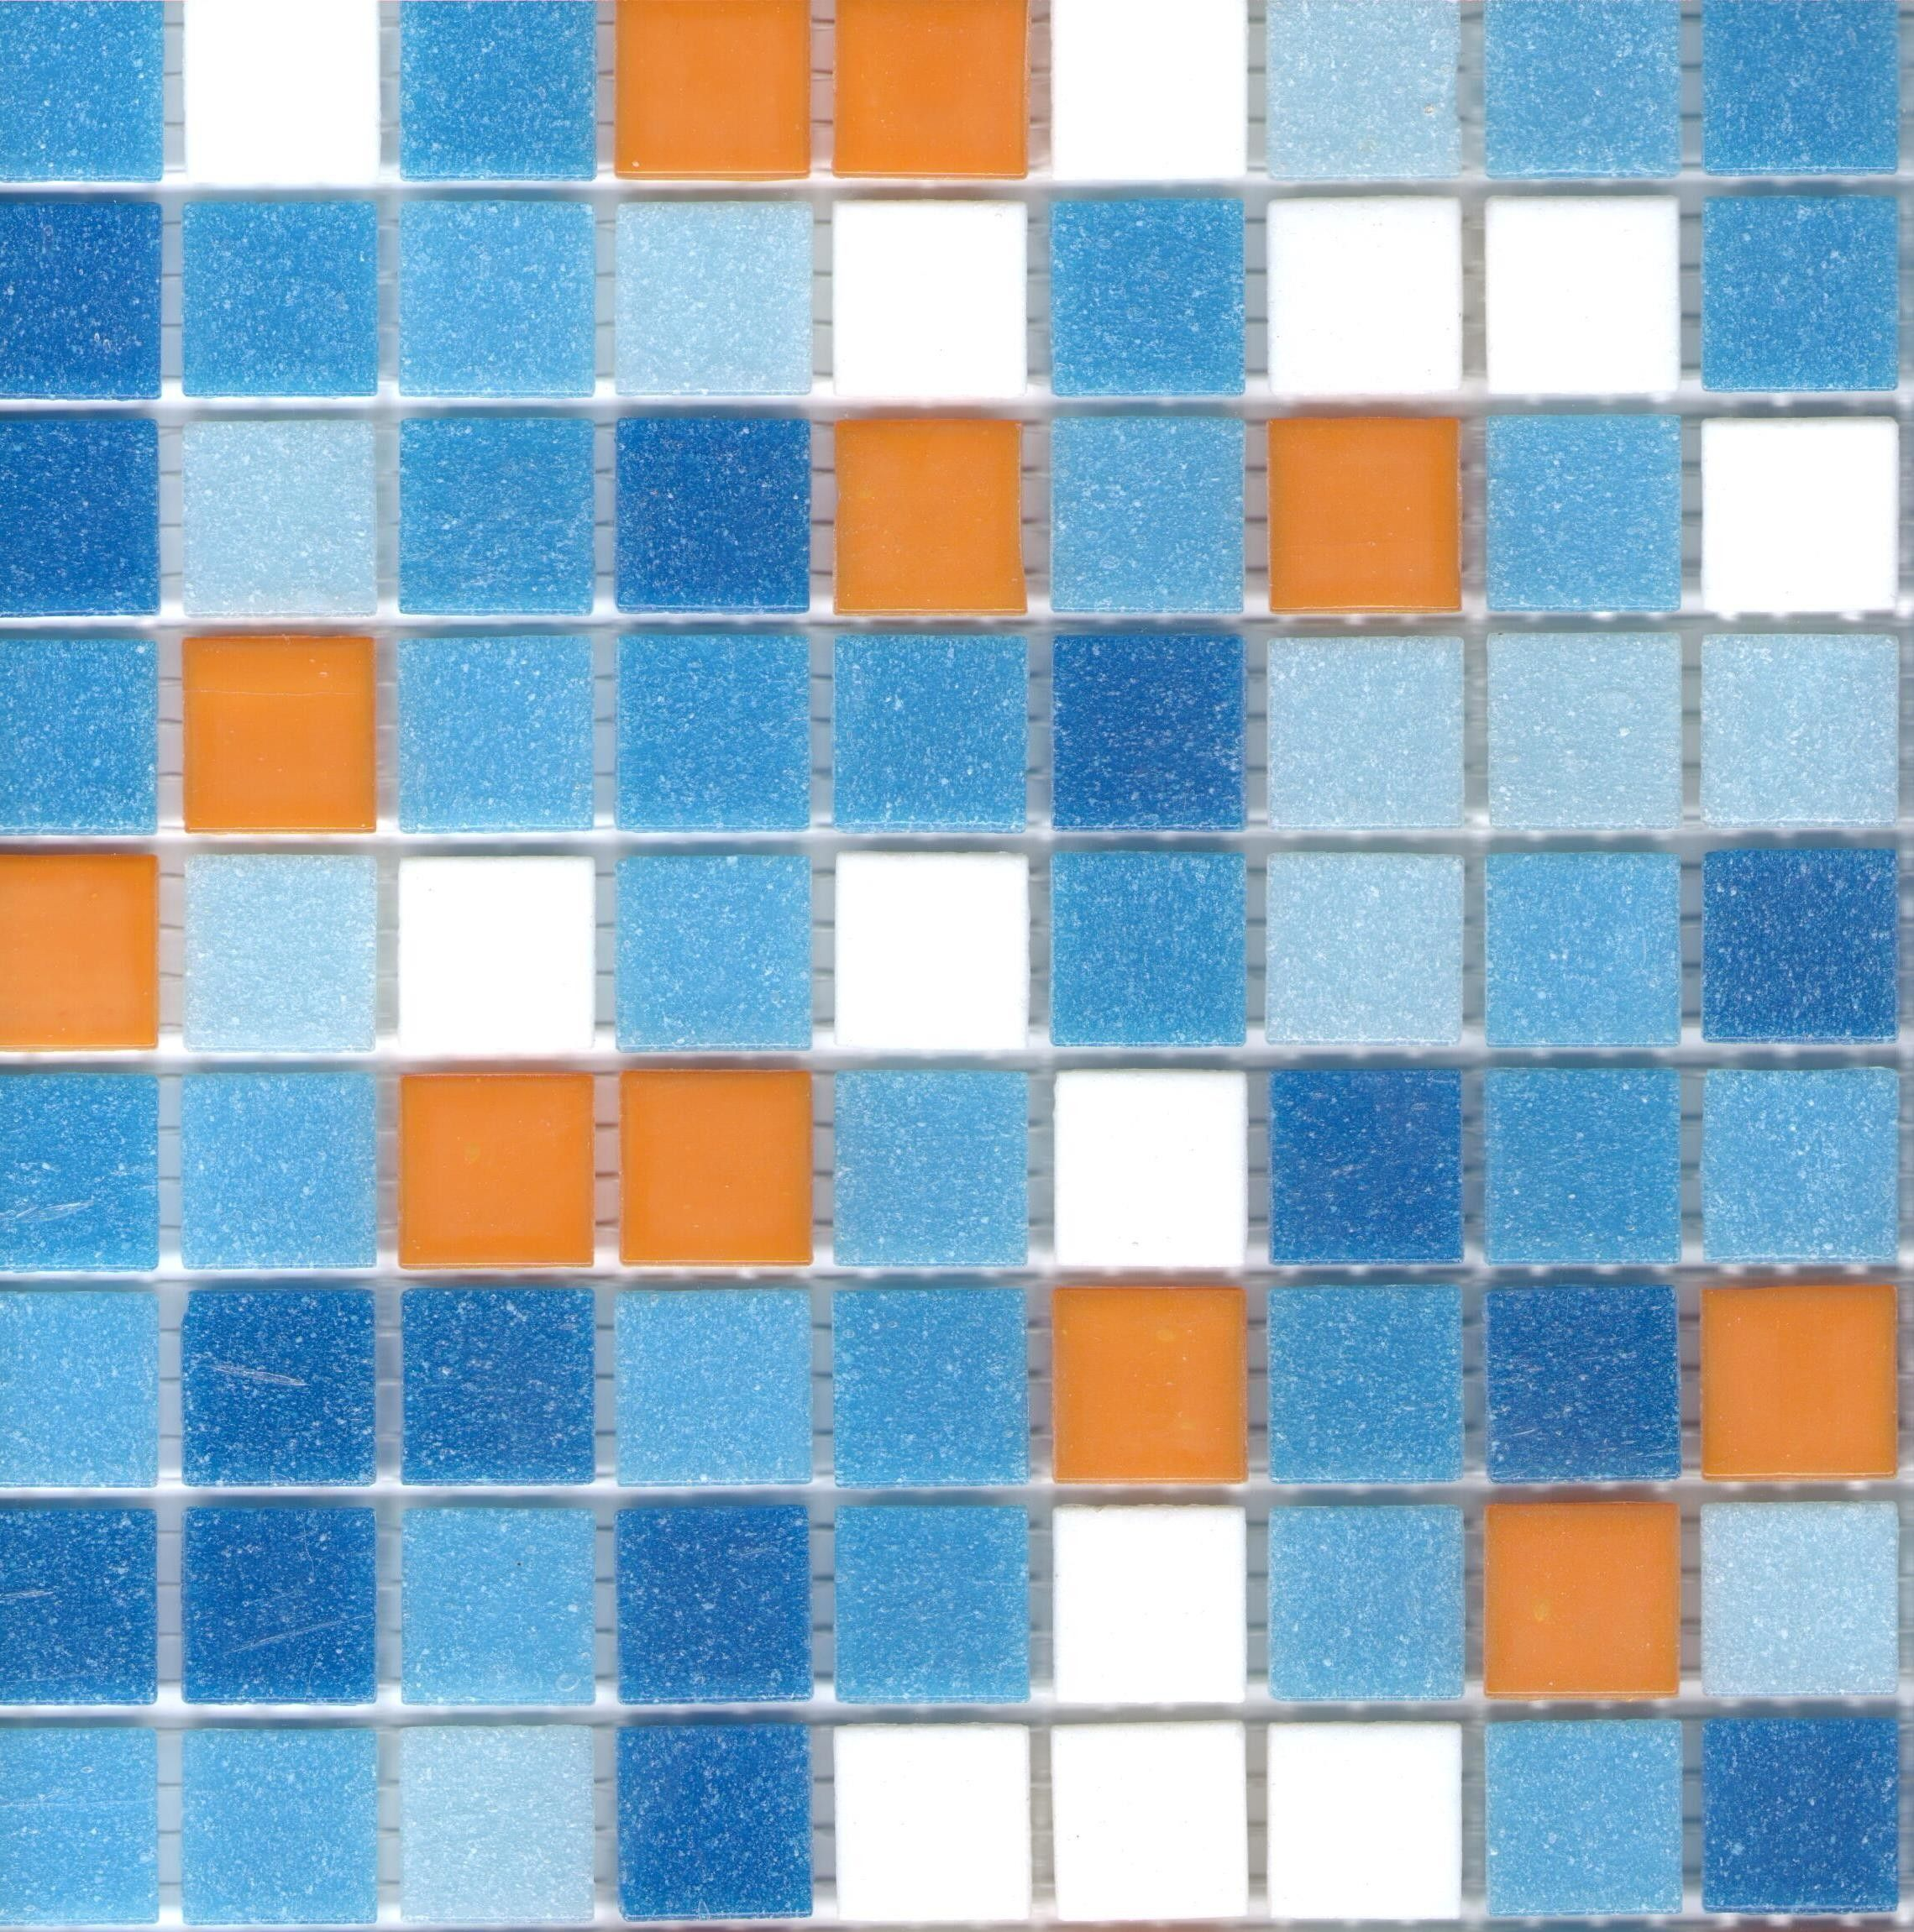 Brio newport blend glass mosaic tile 34 multicolor blue tile brio newport blend glass mosaic tile 34 multicolor blue tile square with orange dailygadgetfo Images